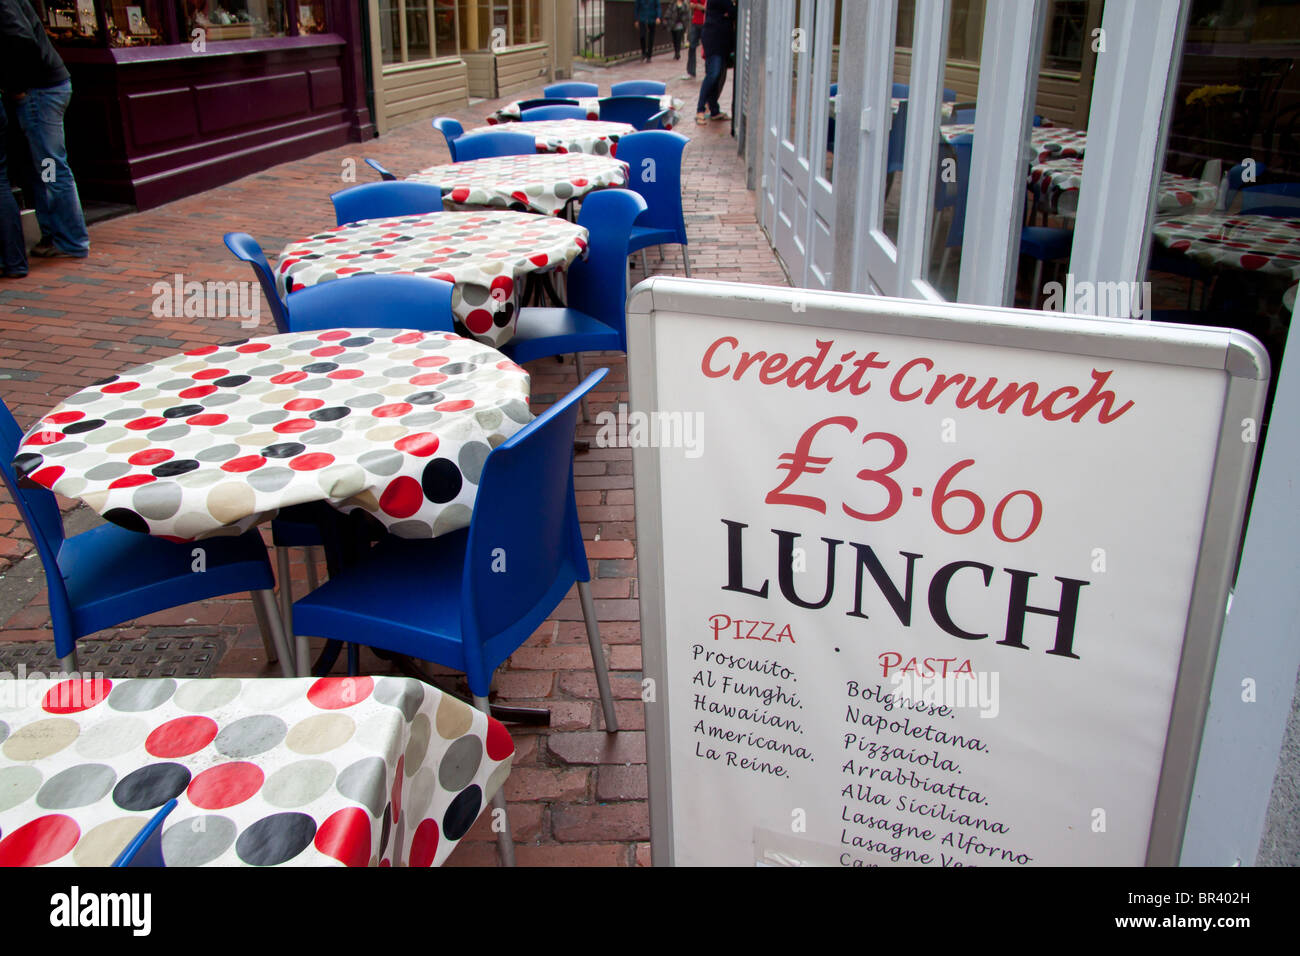 2010 - references to the Credit Crunch are still to be seen in The Lanes, Brighton - Stock Image